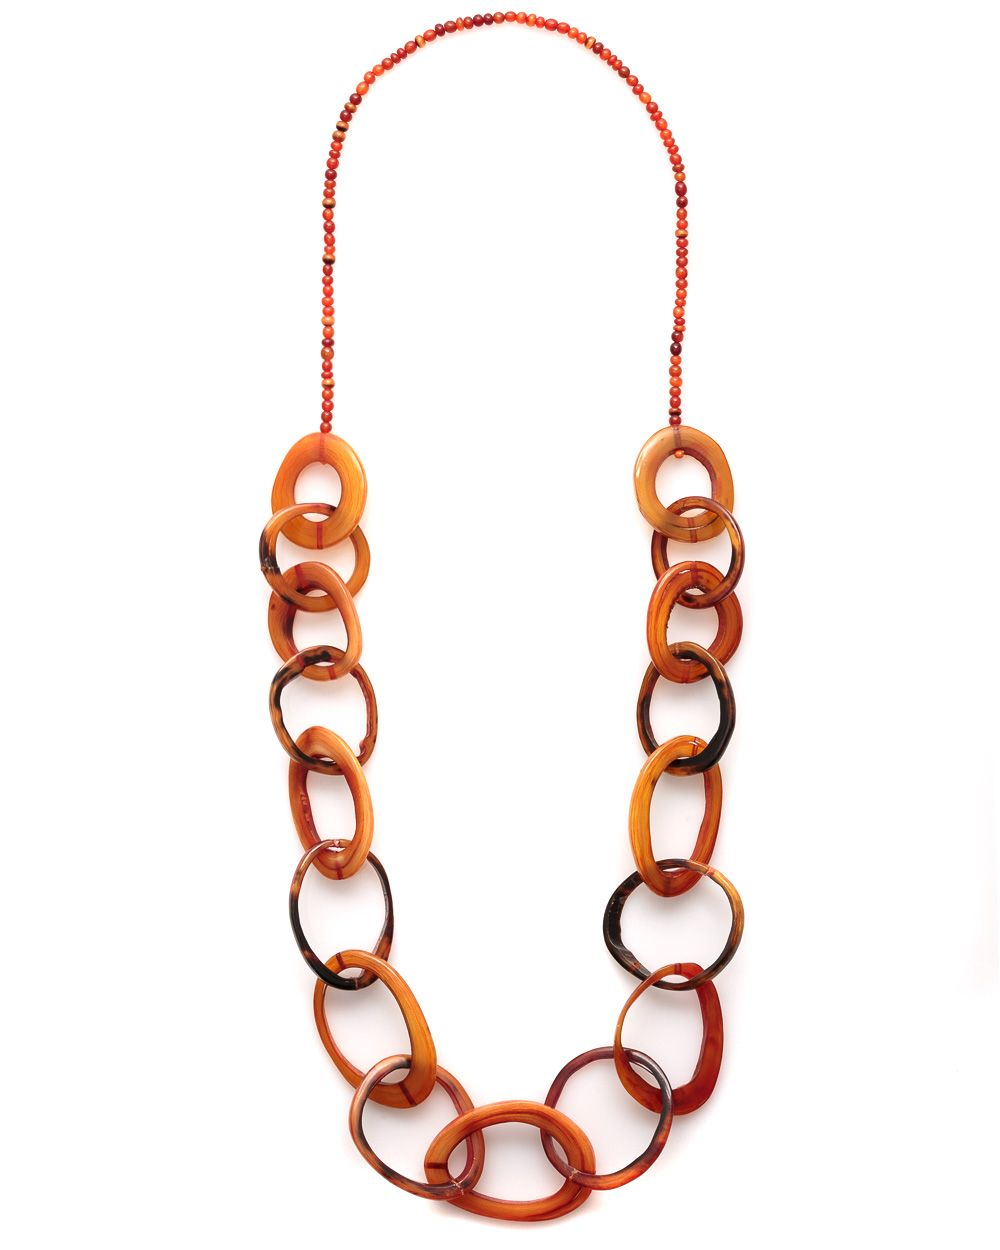 Keeta link necklace